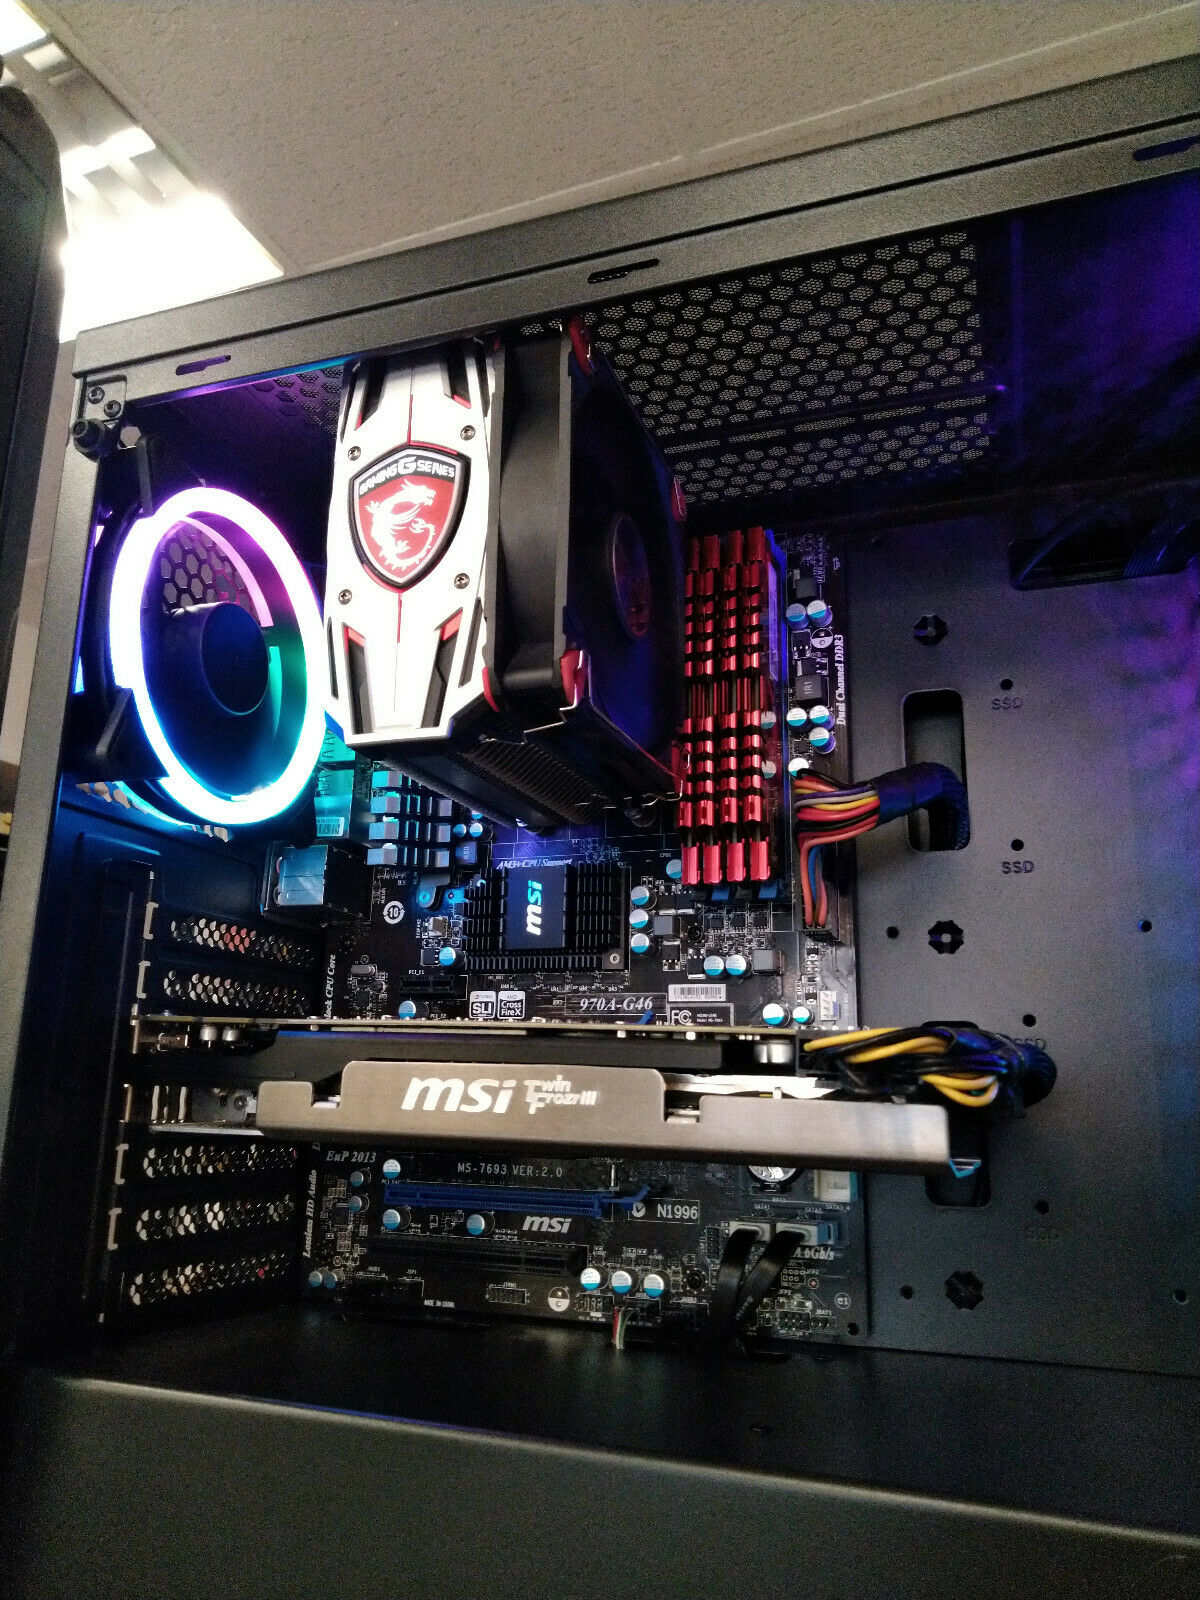 Pc gamer msi, amd fx 8350 @ 8 x 4,00 ghz, 16 go ddr3, radeon hd 7950 - 3 go, w10